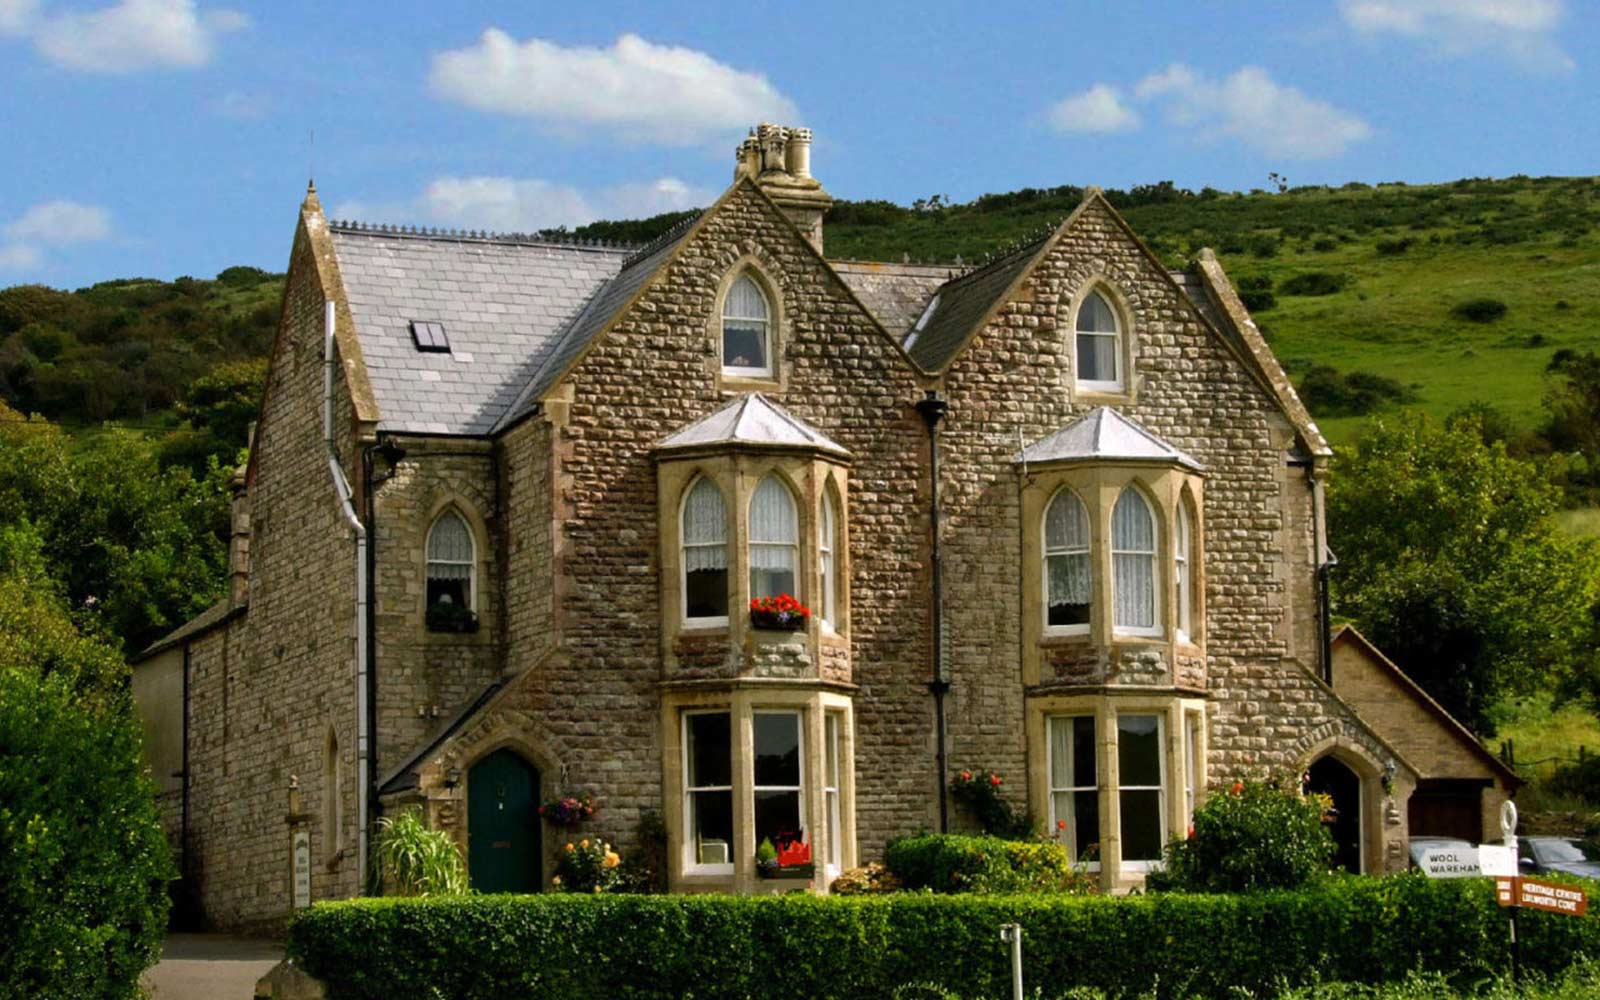 This Charming Victorian Country House Was Just Named the World's Best B&B